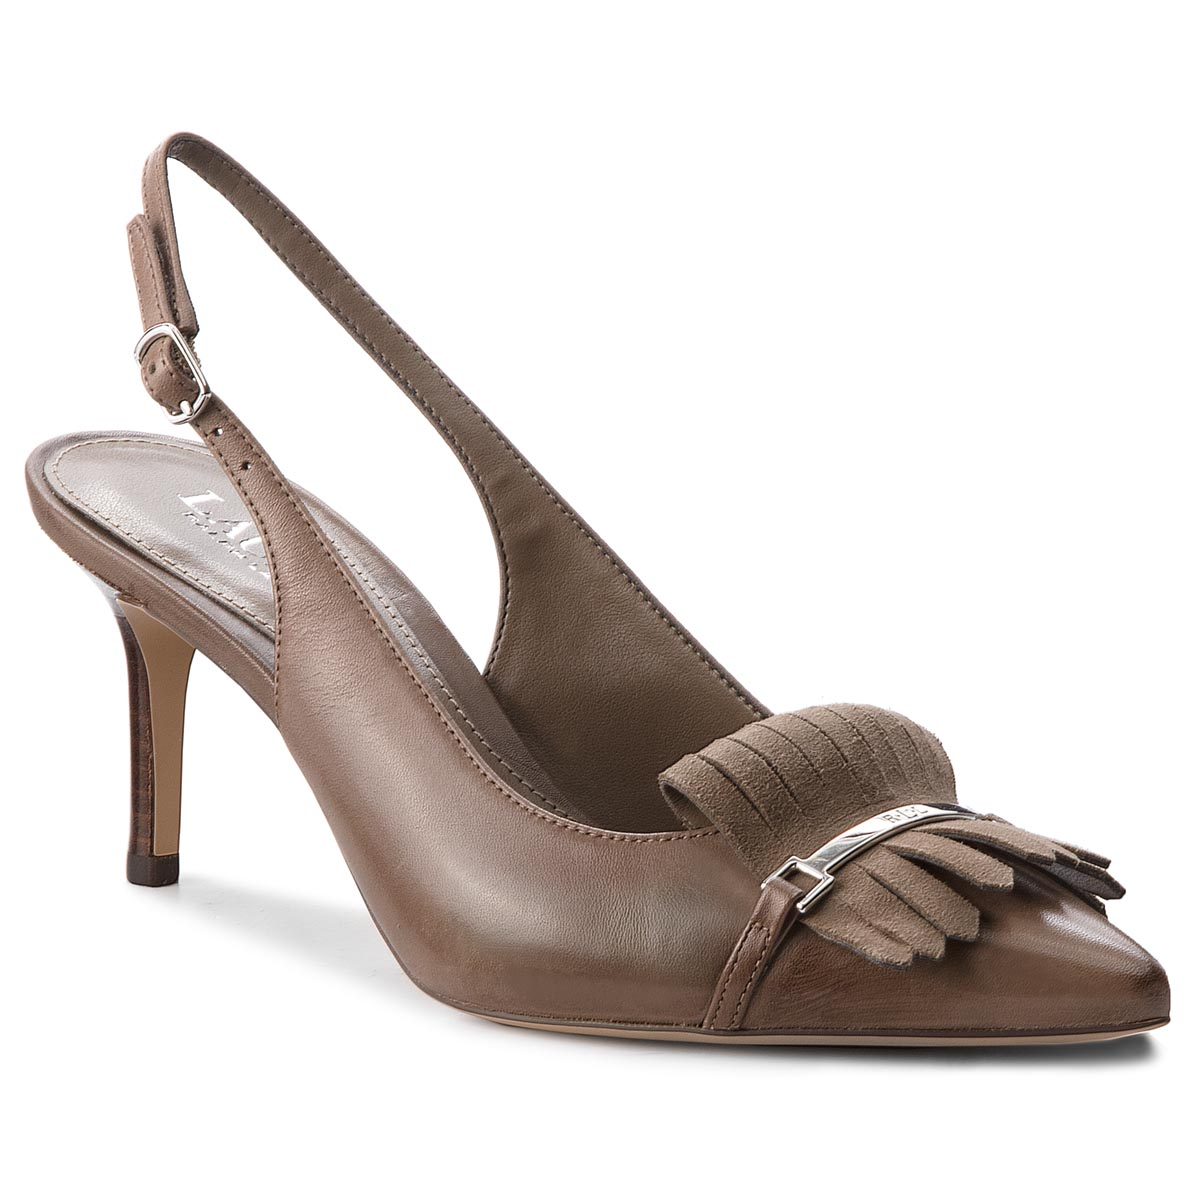 Sandale LAUREN RALPH LAUREN - Latasha 802709662003 Light Taupe/Light Taupe